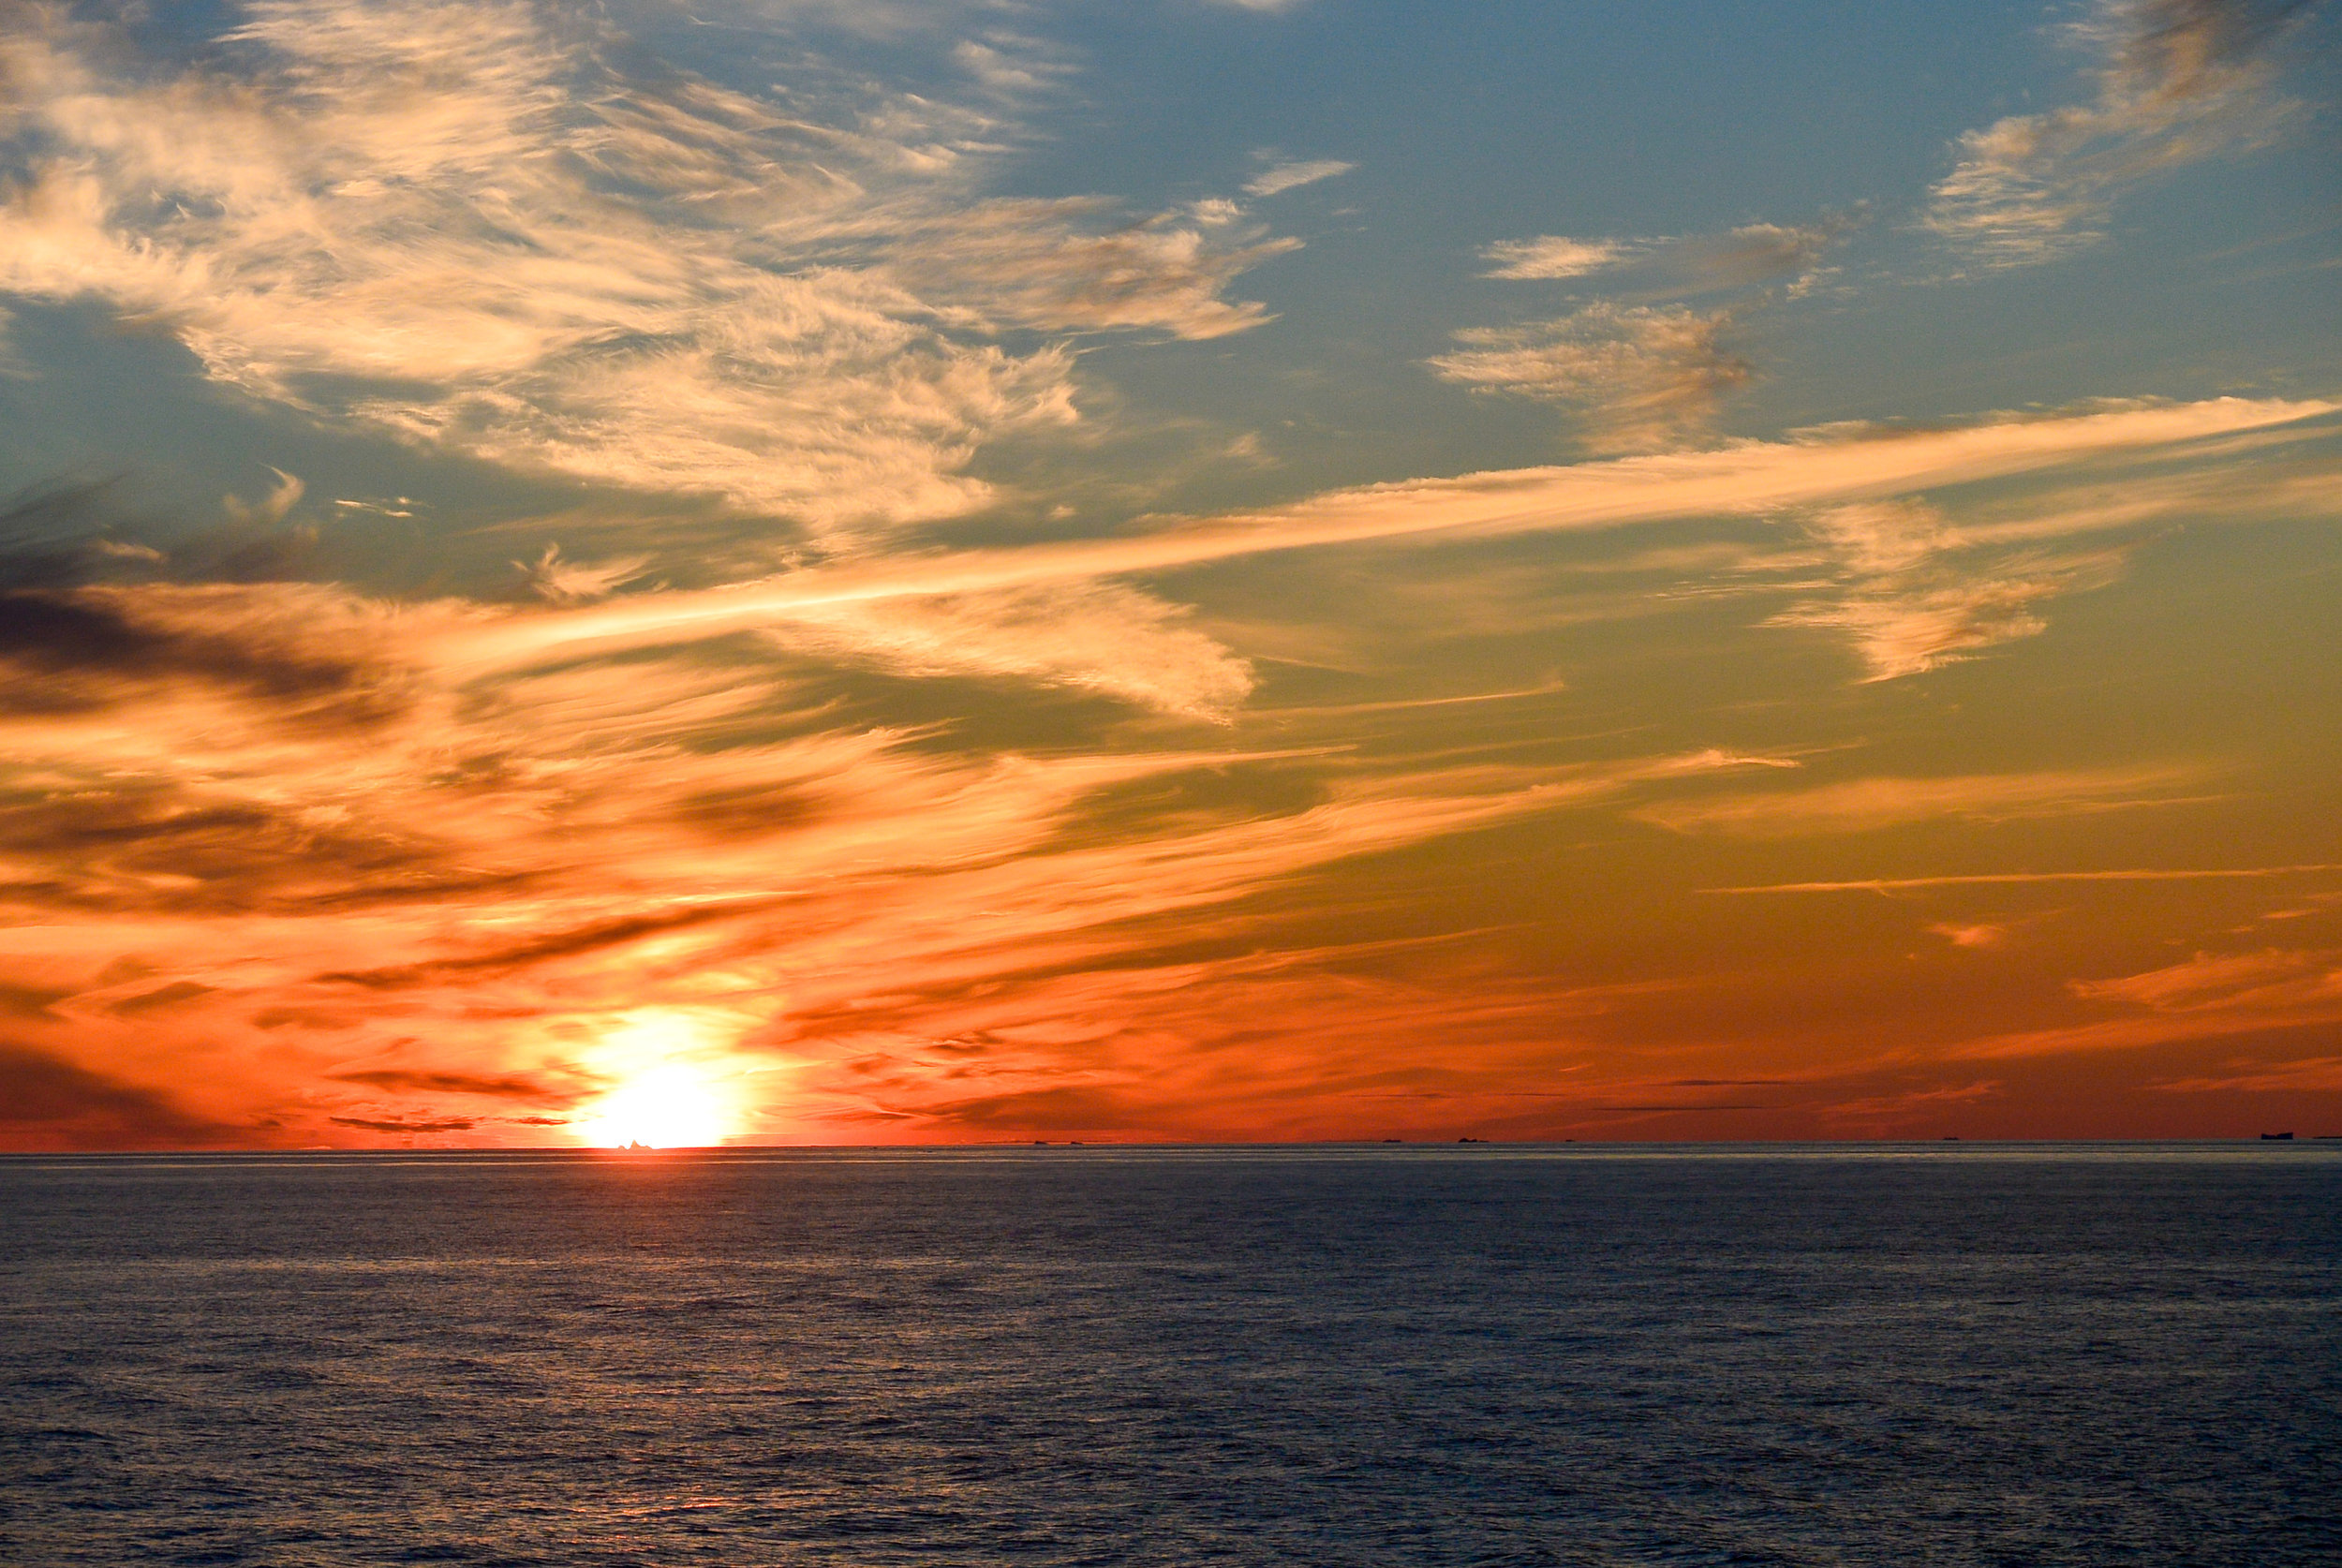 Red sunset off the coast of Greenland